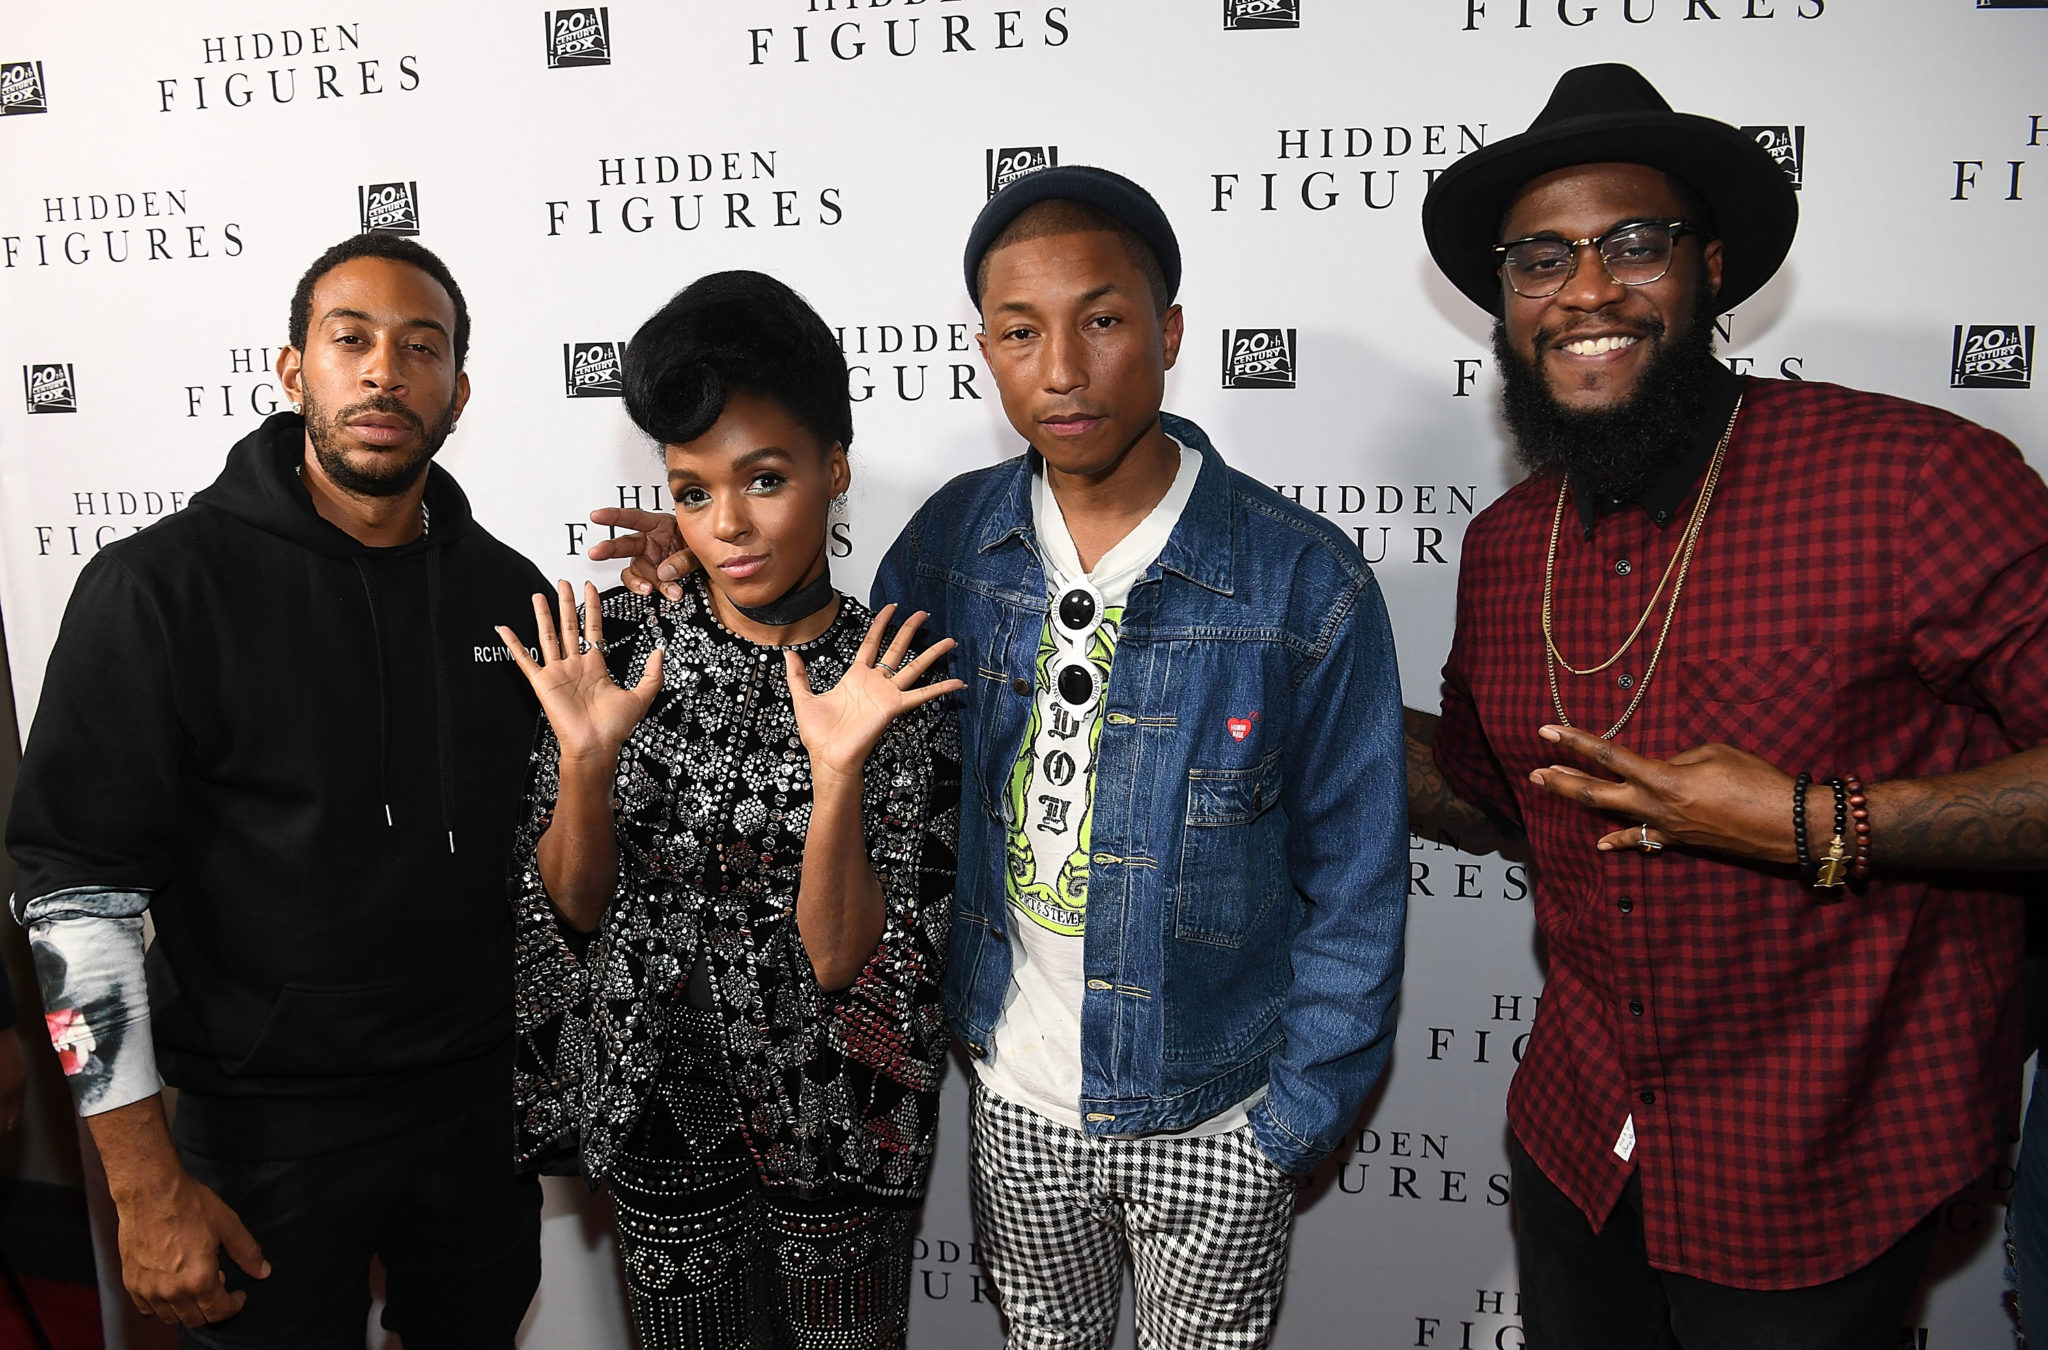 """HIDDEN FIGURES"" Soundtrack Listening Party Hosted by DJ Drama with Janelle Monae & Pharrell Williams"